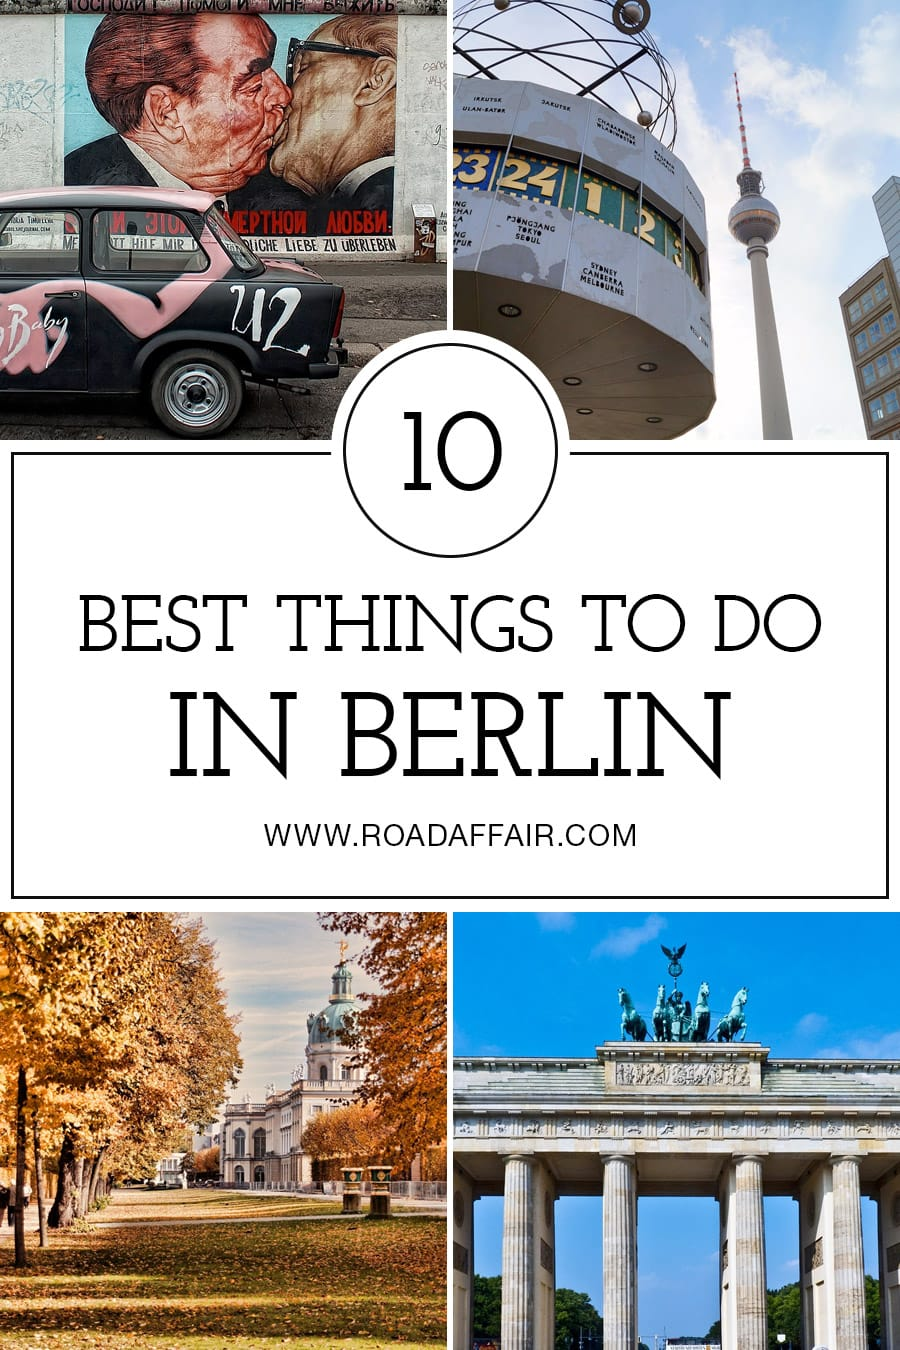 Discover the best things to do in Berlin!